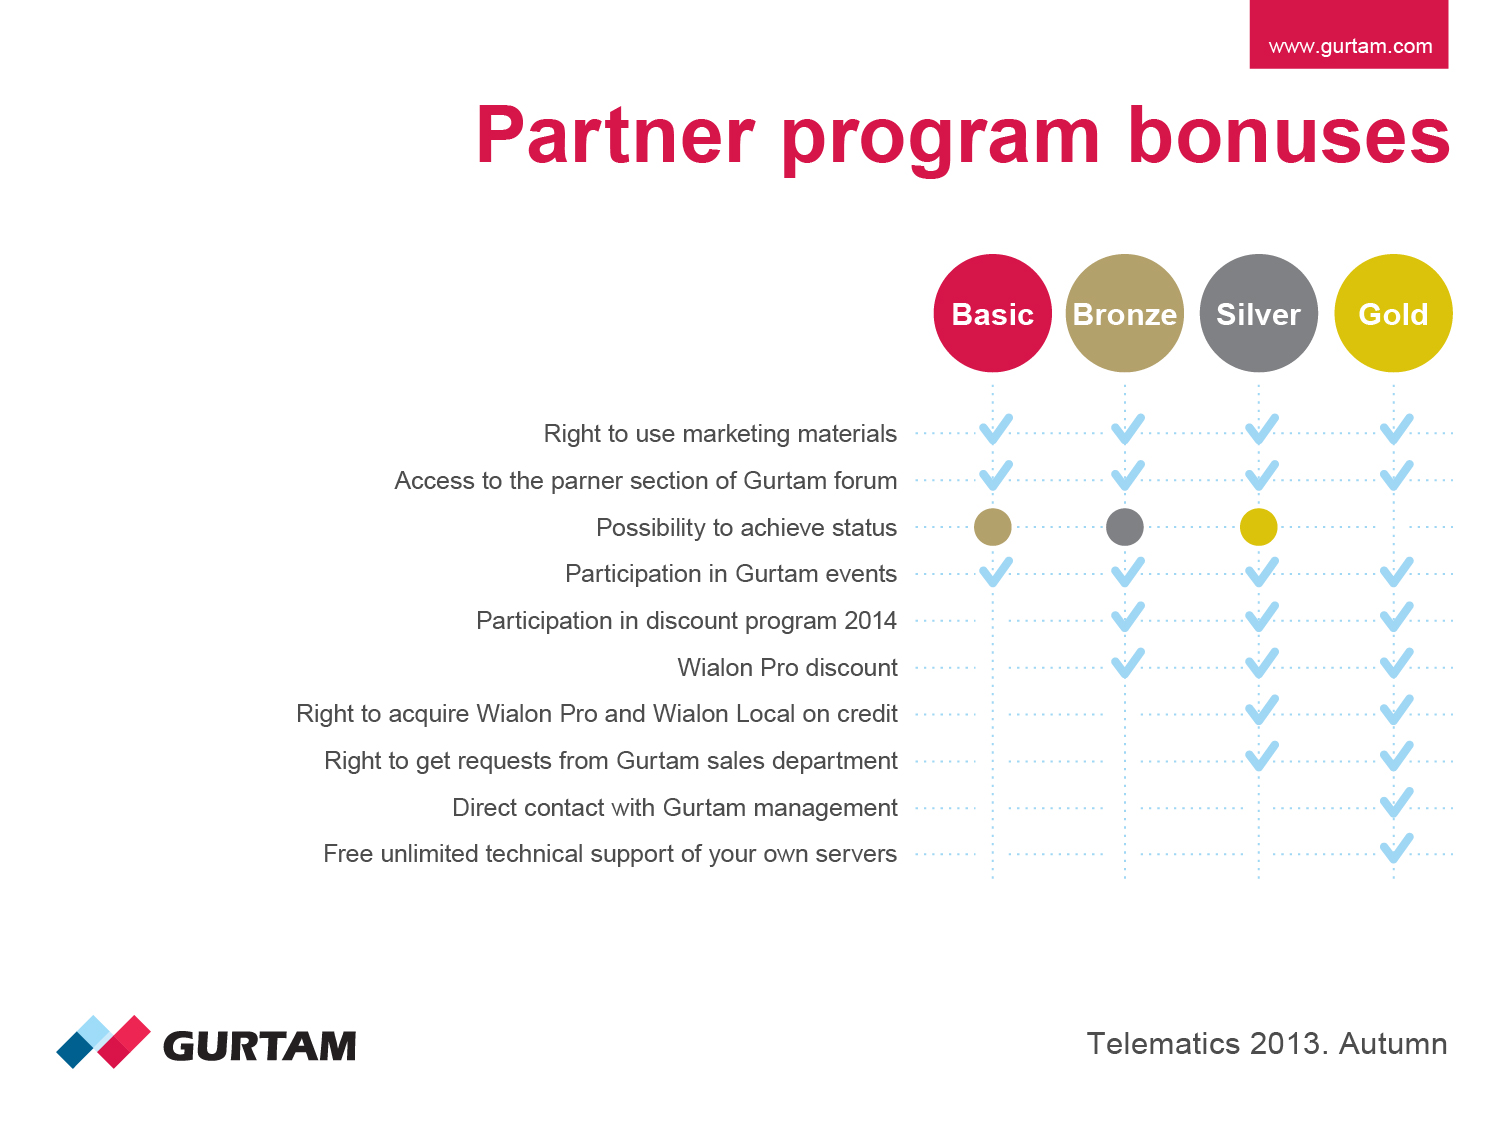 Partner program bonuses in 2014